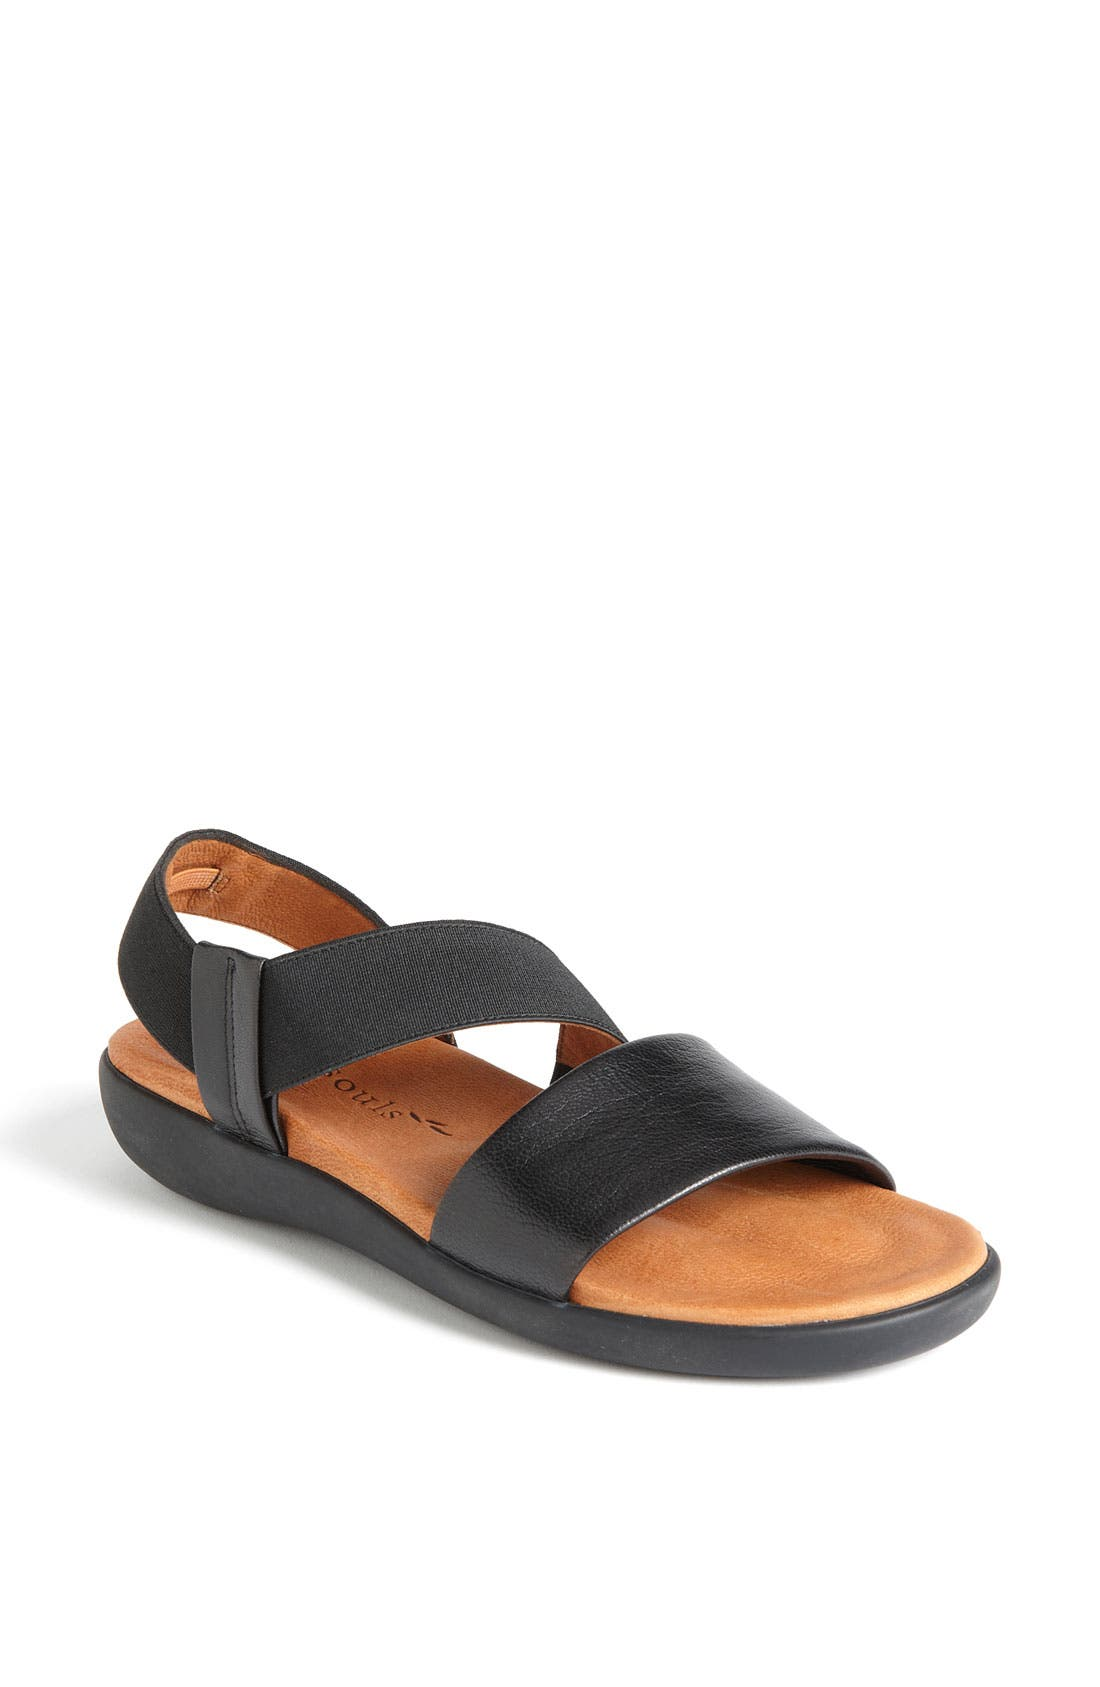 'Get Goin' Sandal,                             Main thumbnail 1, color,                             001